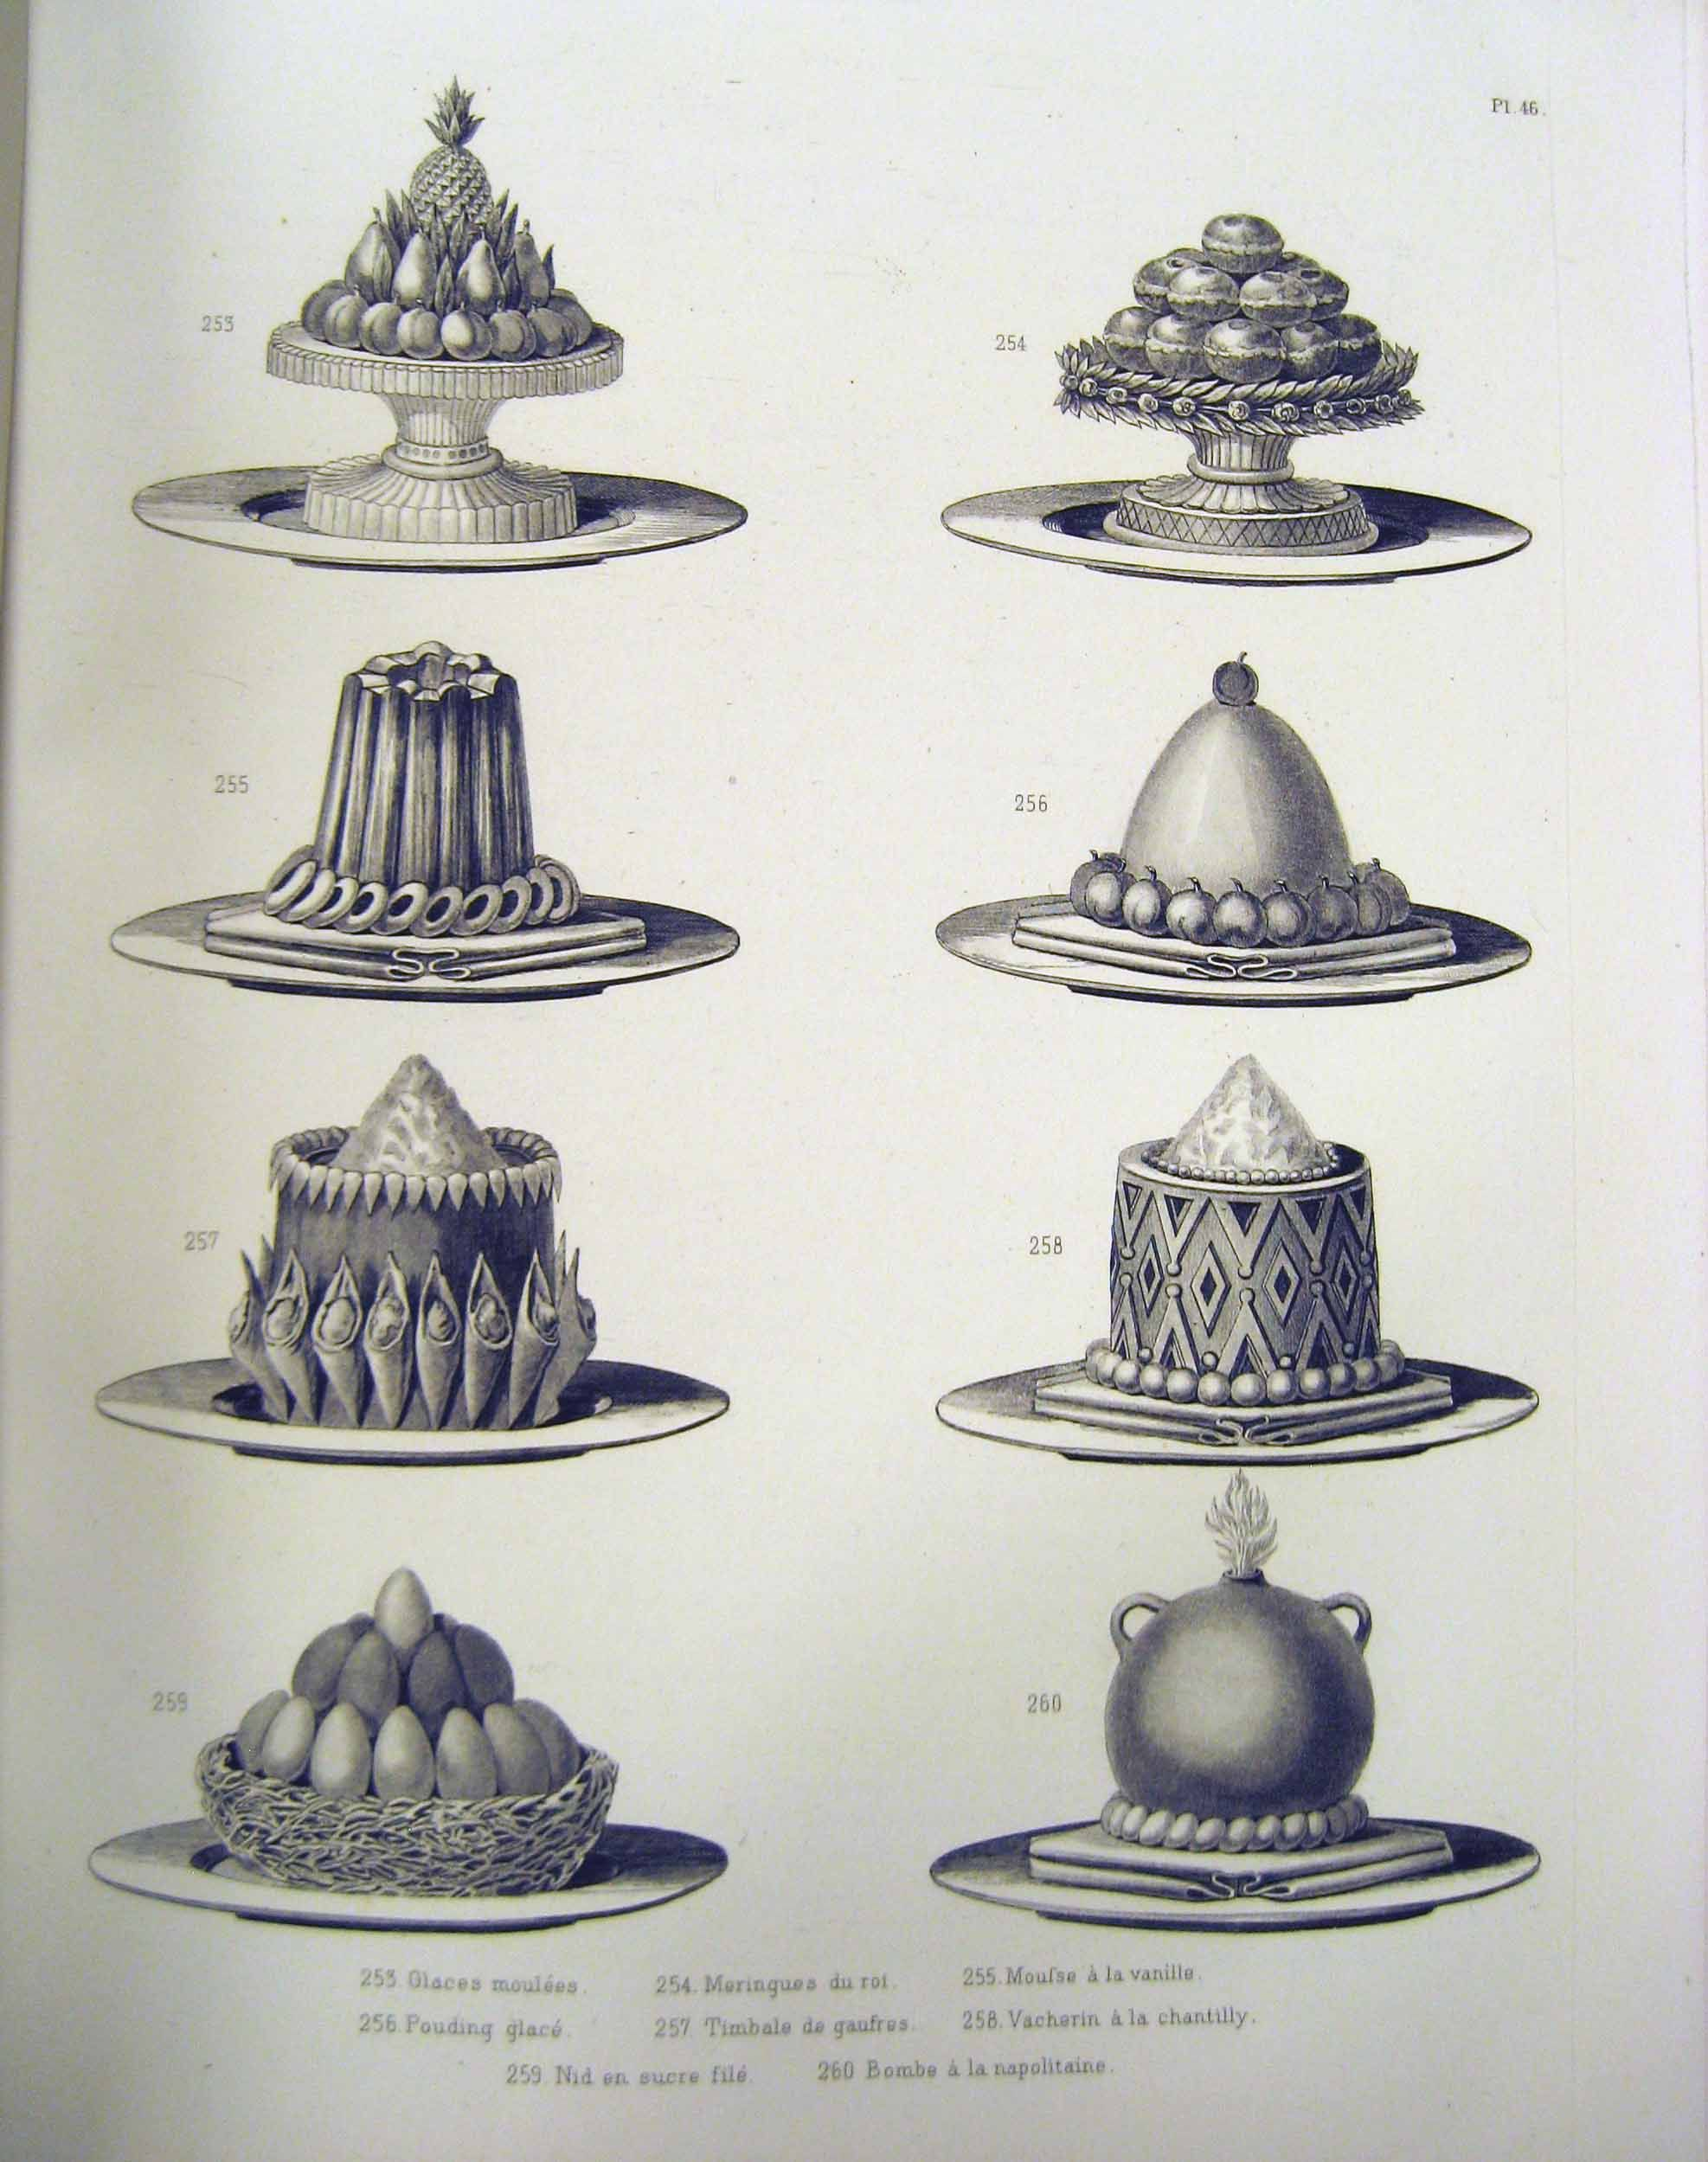 chaudfroid jellied sauces w poultry chaudfroid artistic cookery a practical system by urbain dubois 1870 winterthur library